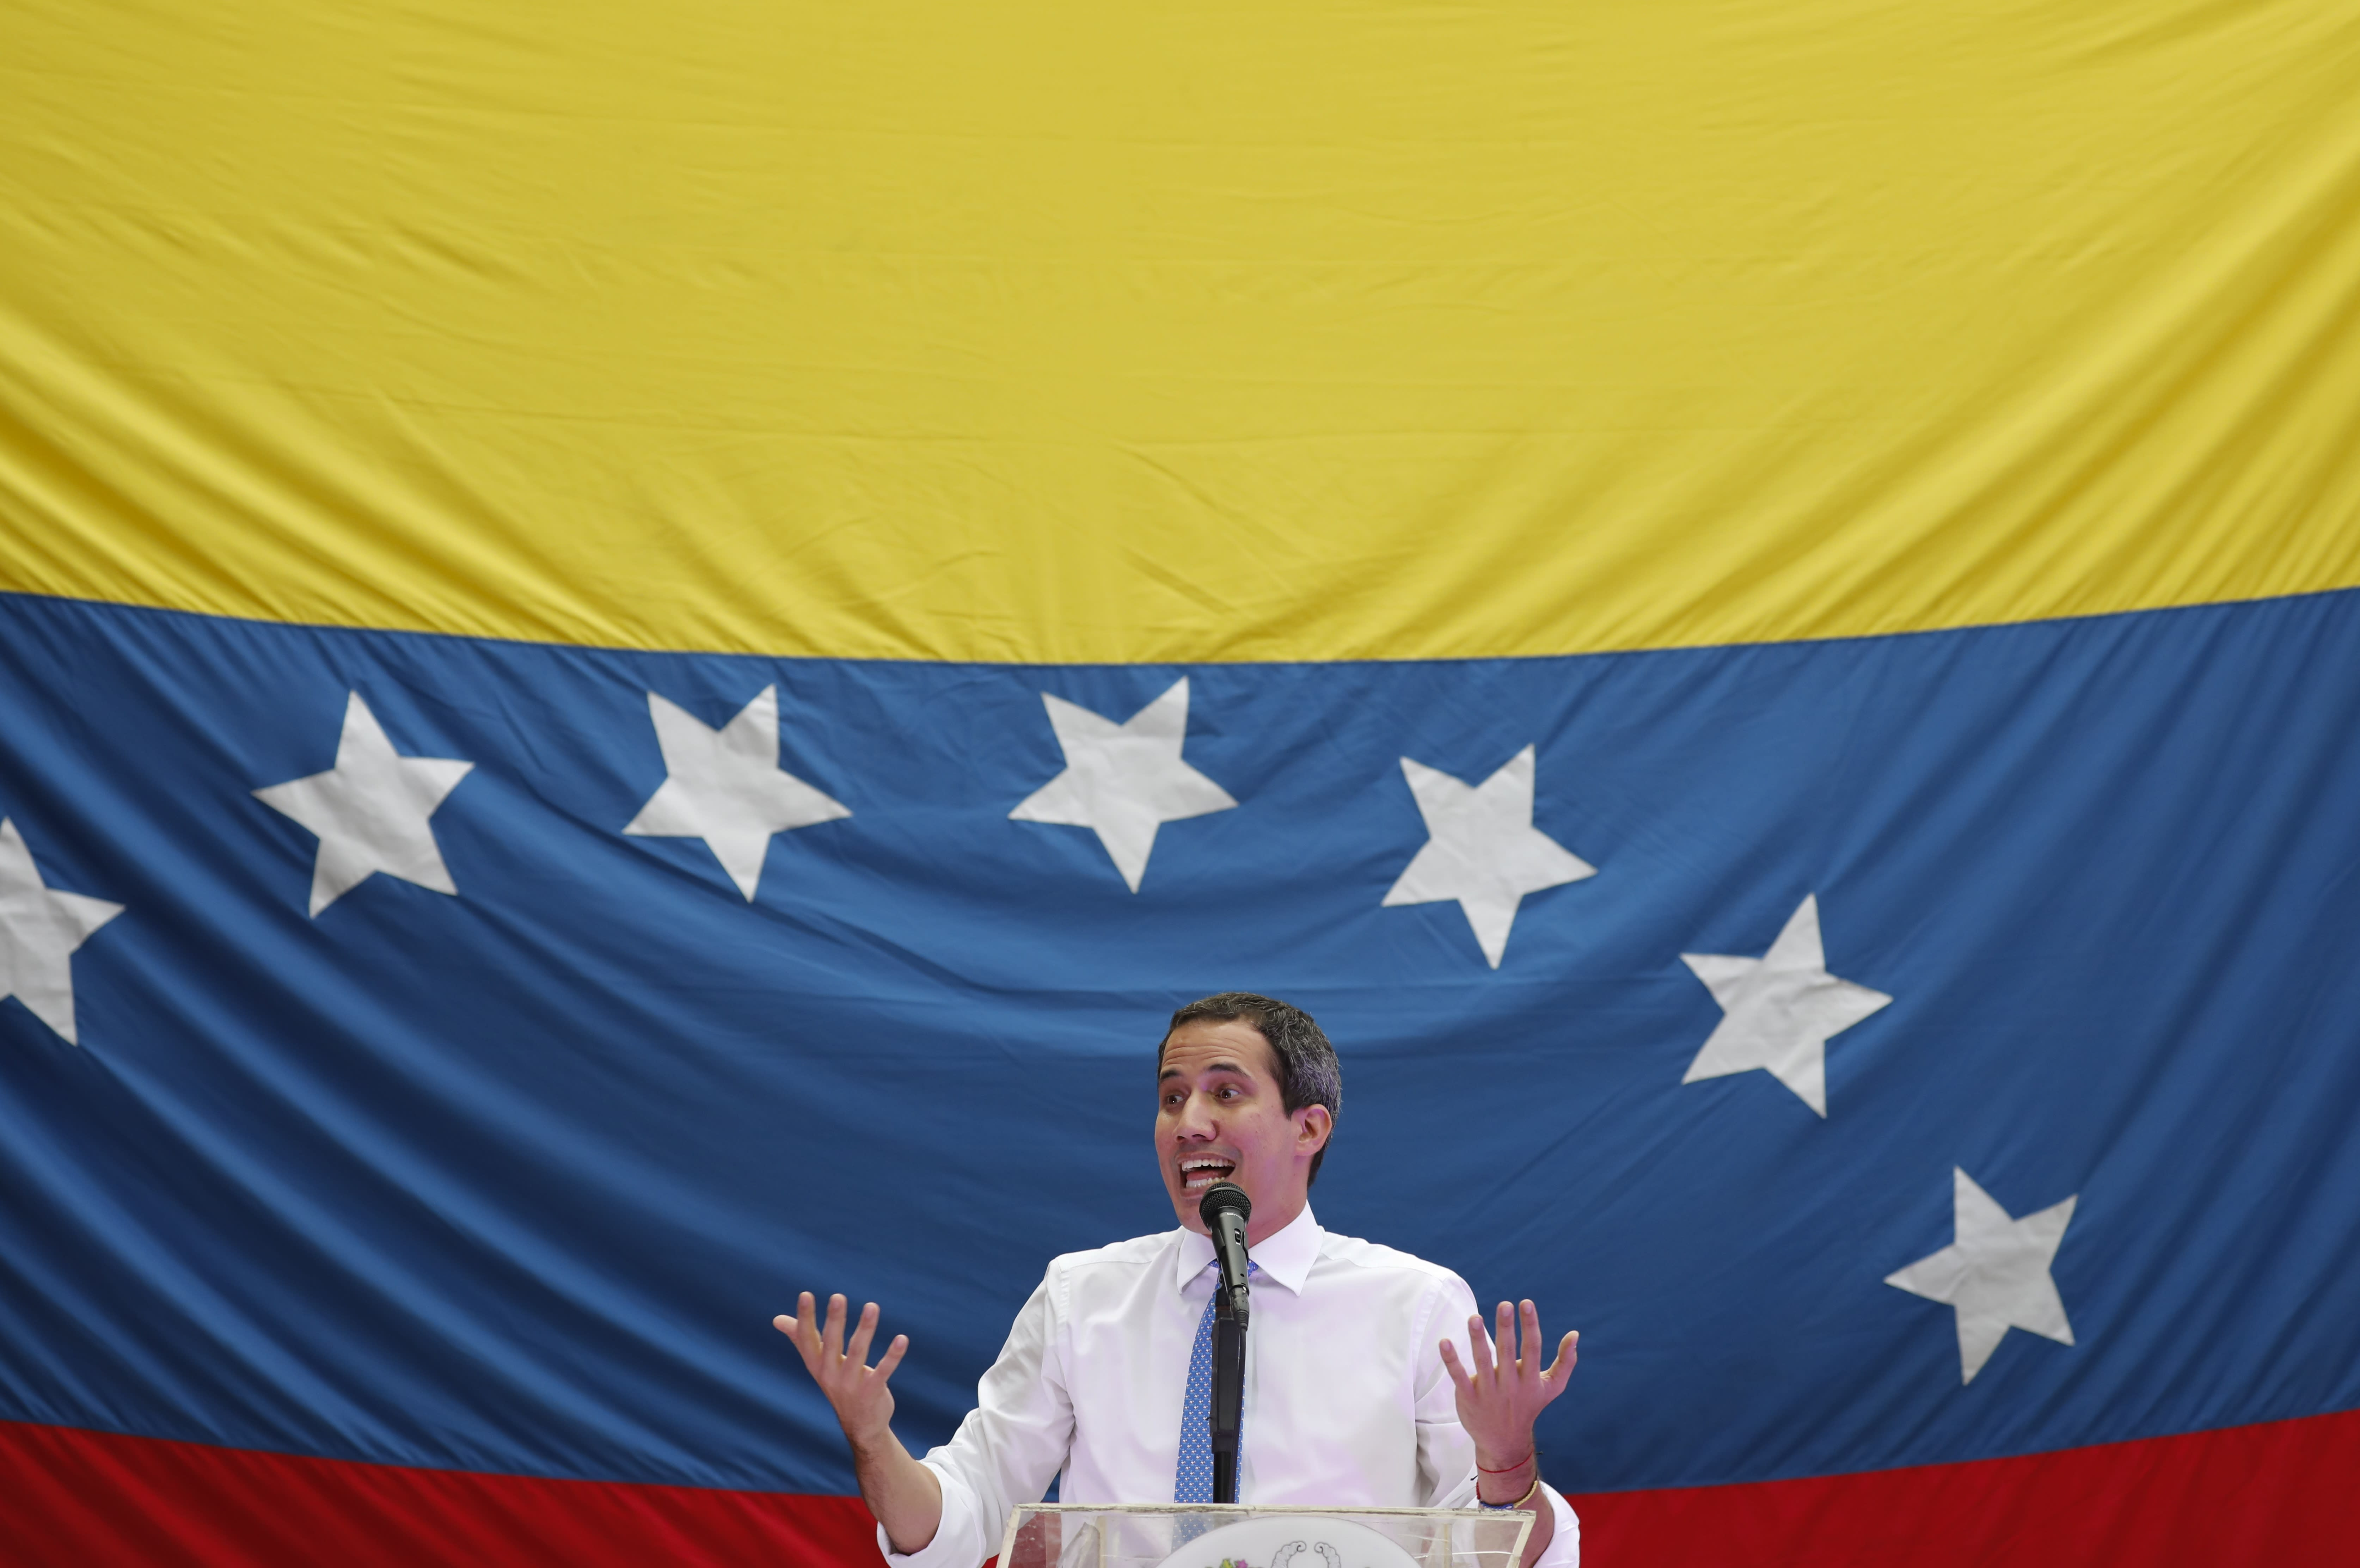 Opposition leader and self-proclaimed interim President Juan Guaido speaks during a citizen assembly at a square in the neighborhood of El Paradiso in Caracas, Venezuela, Monday, Sept. 30, 2019. On Monday, Guaidó came out in defense of the Colombian government claim that Colombian guerrilla troops are operating in Venezuela, and accused Venezuelan President Nicolas Maduro of supporting them. (AP Photo/Ariana Cubillos)